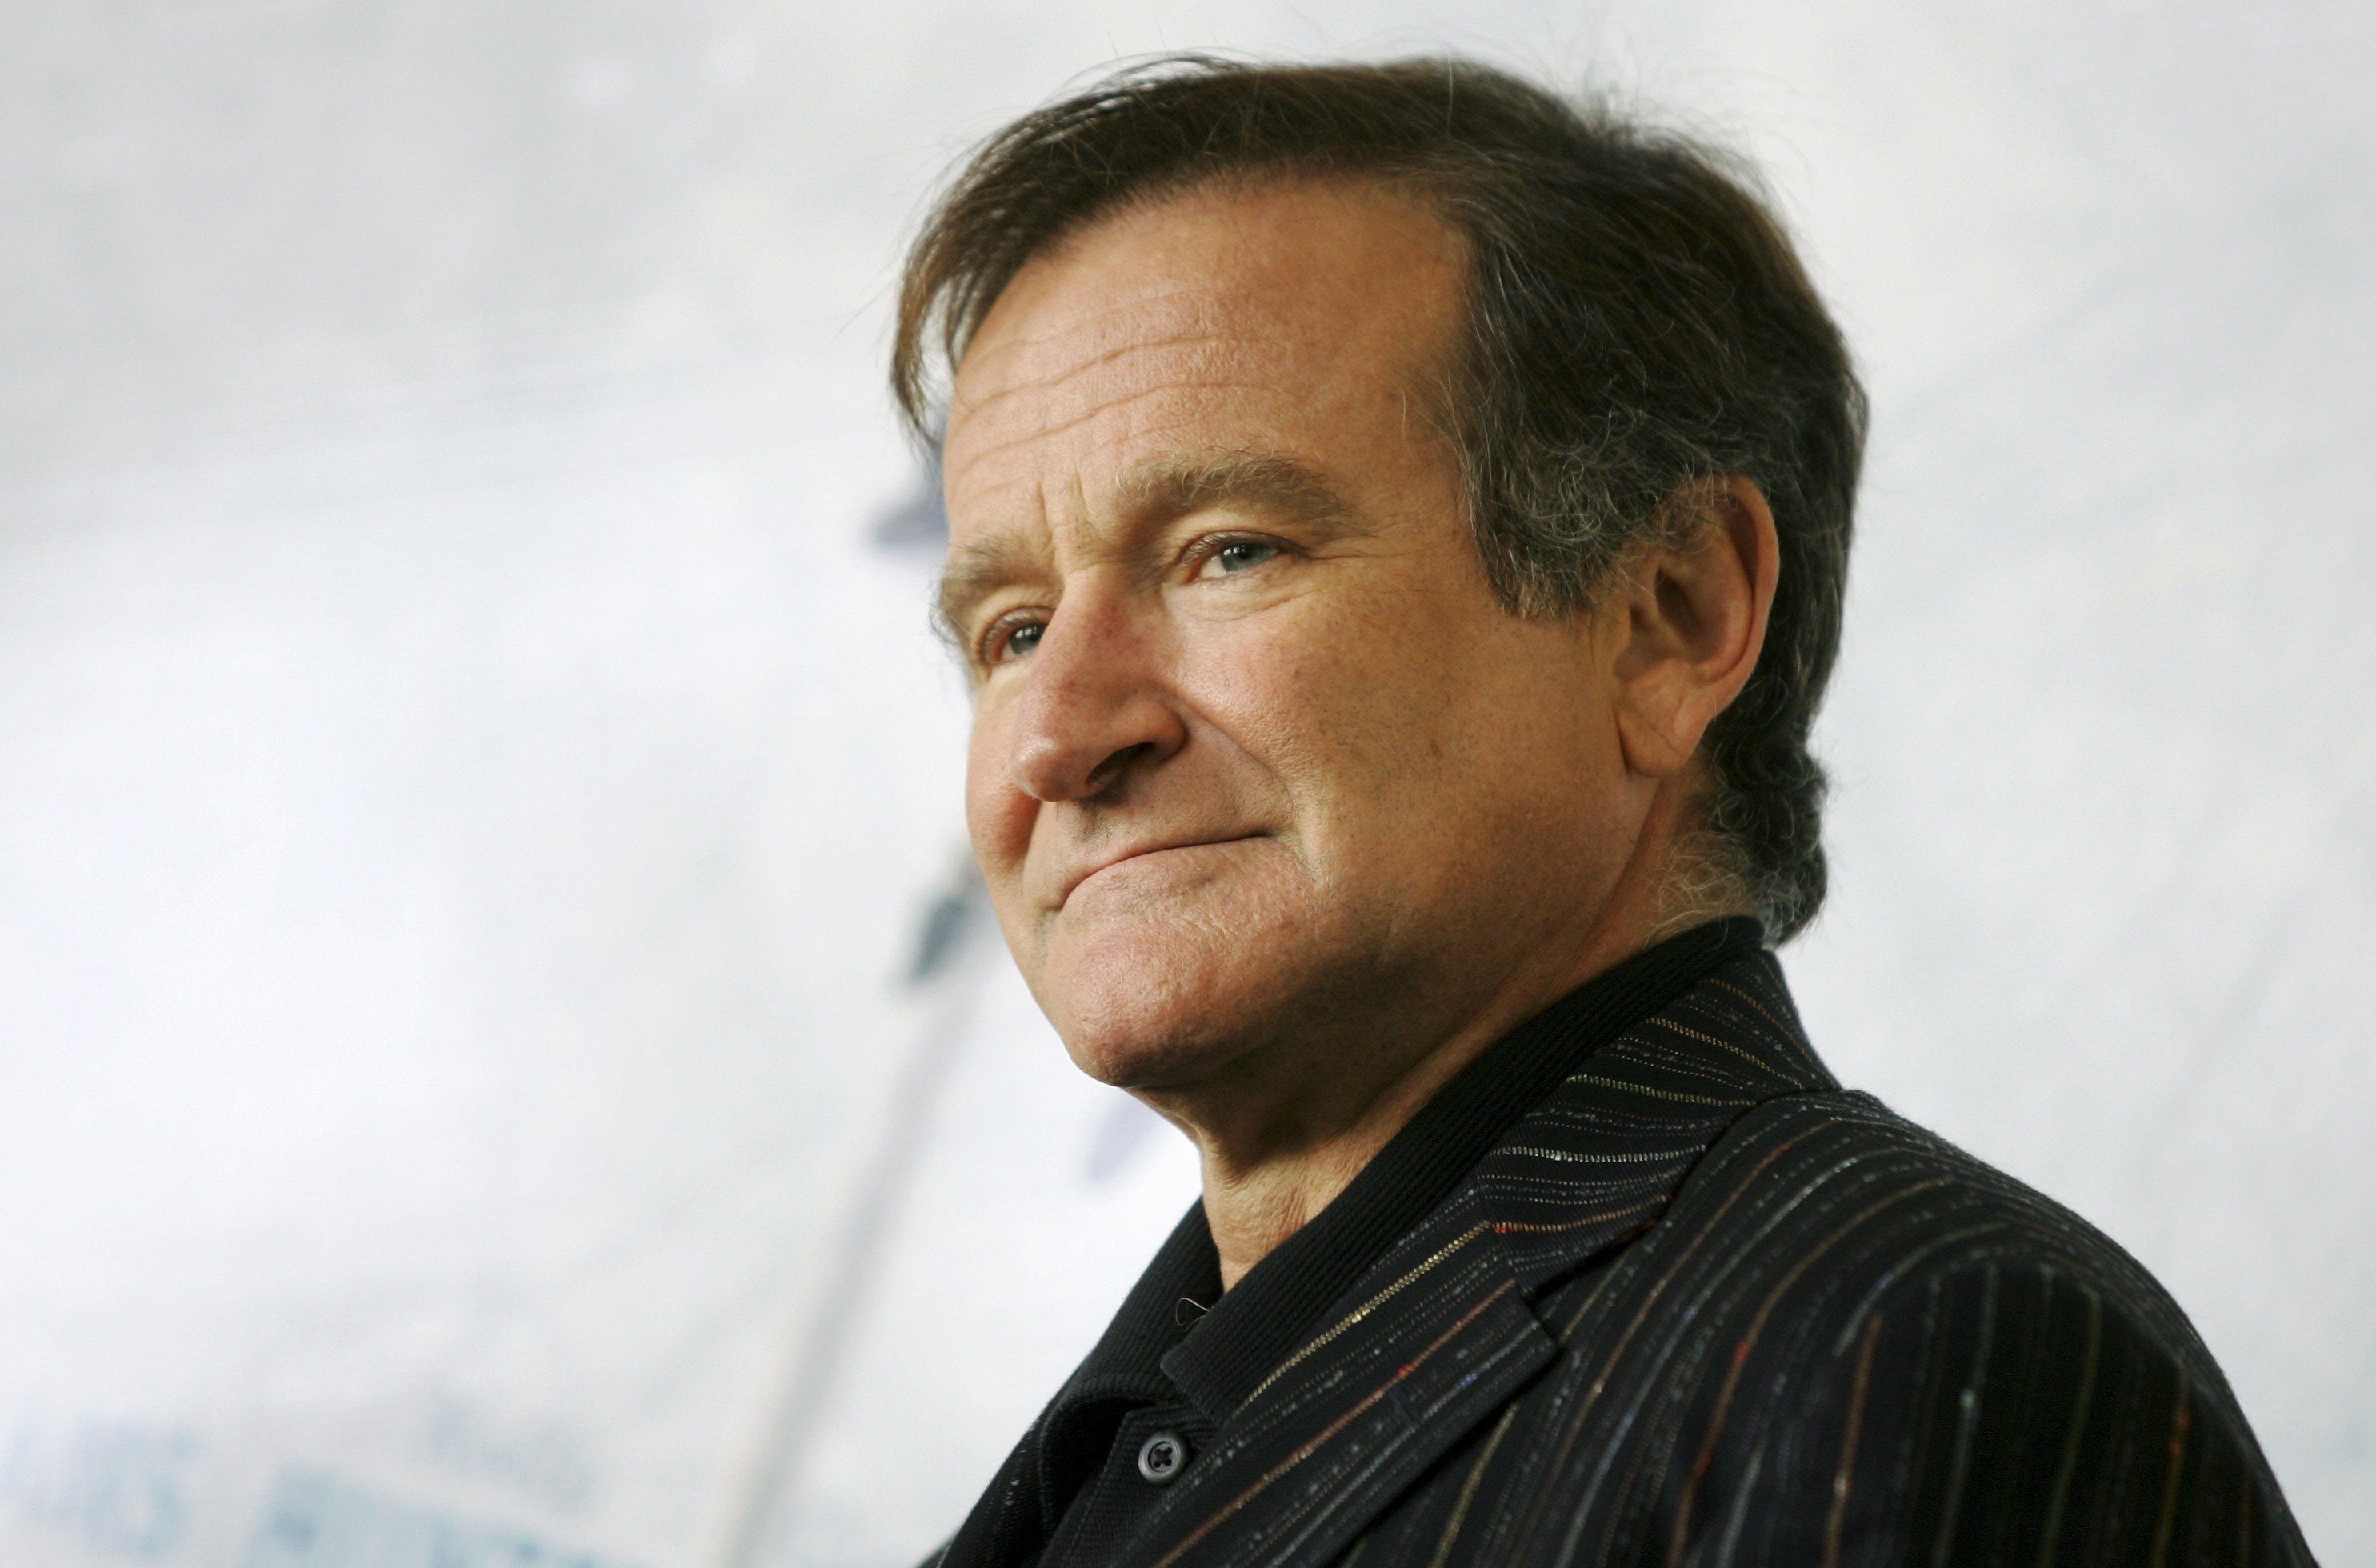 U.S. actor Robin Williams posing for photographers during a photo-call in Rome on Nov. 15, 2005.